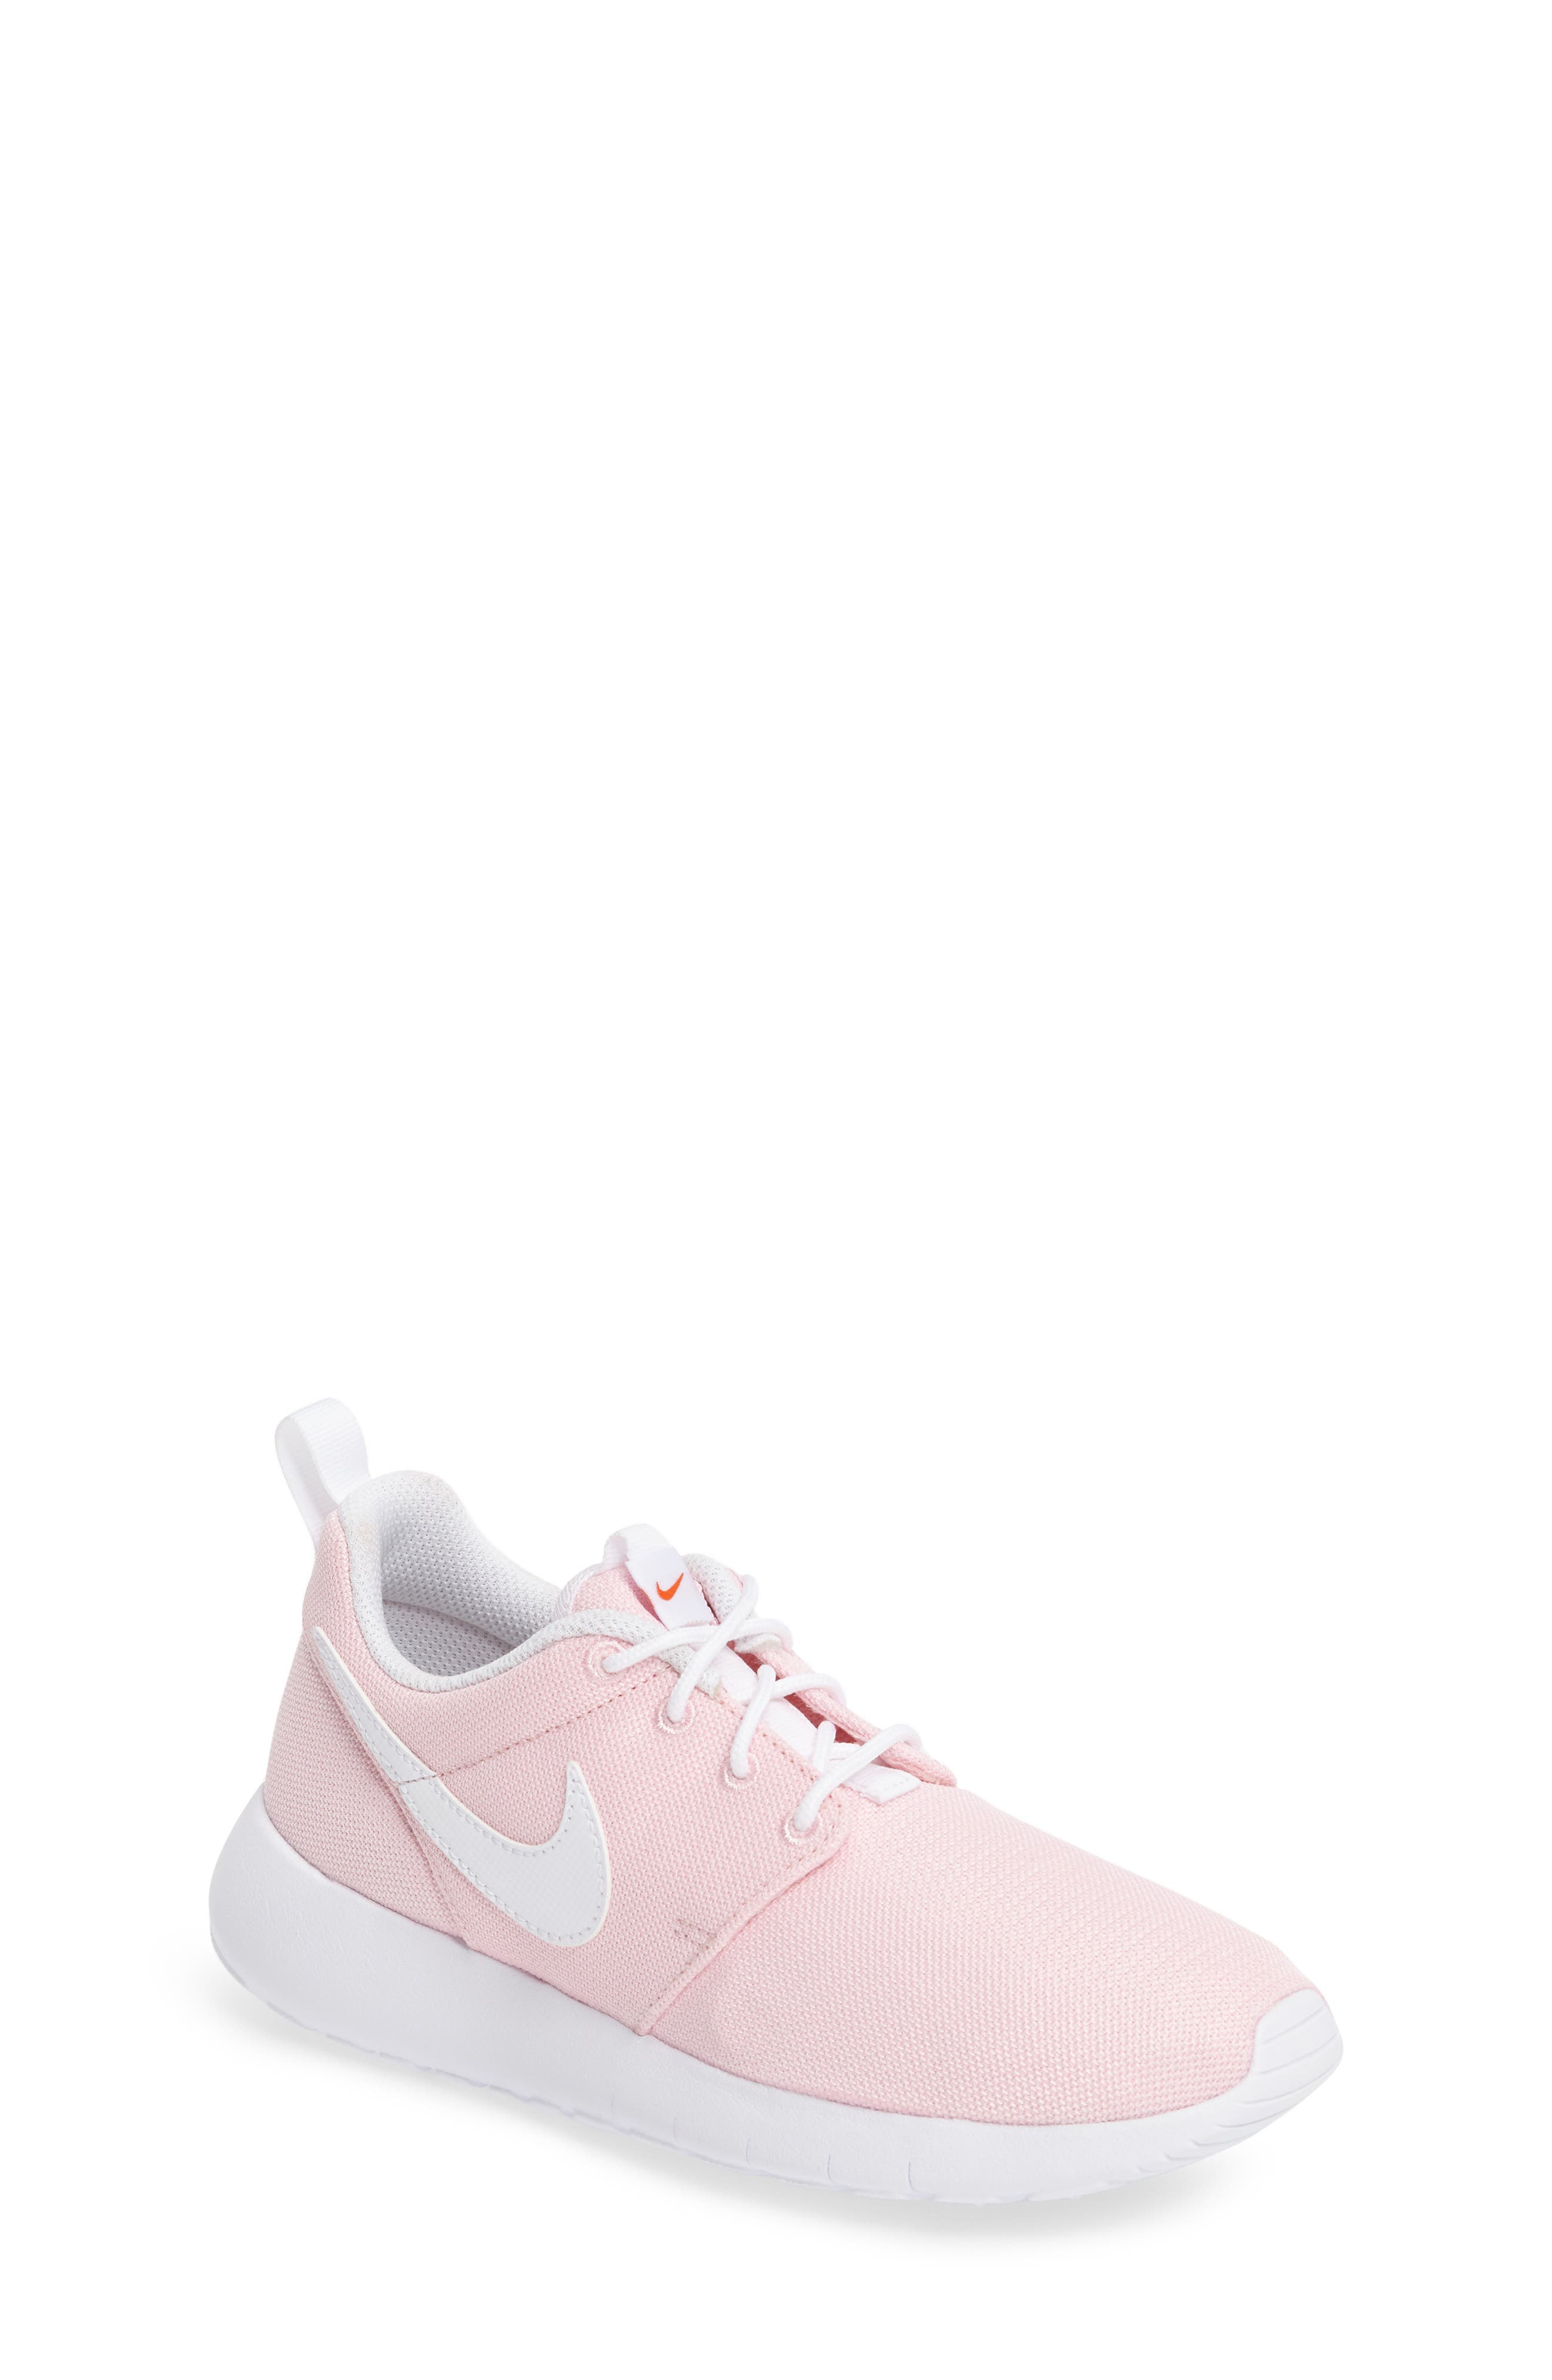 NIKE 'Roshe Run' Athletic Shoe